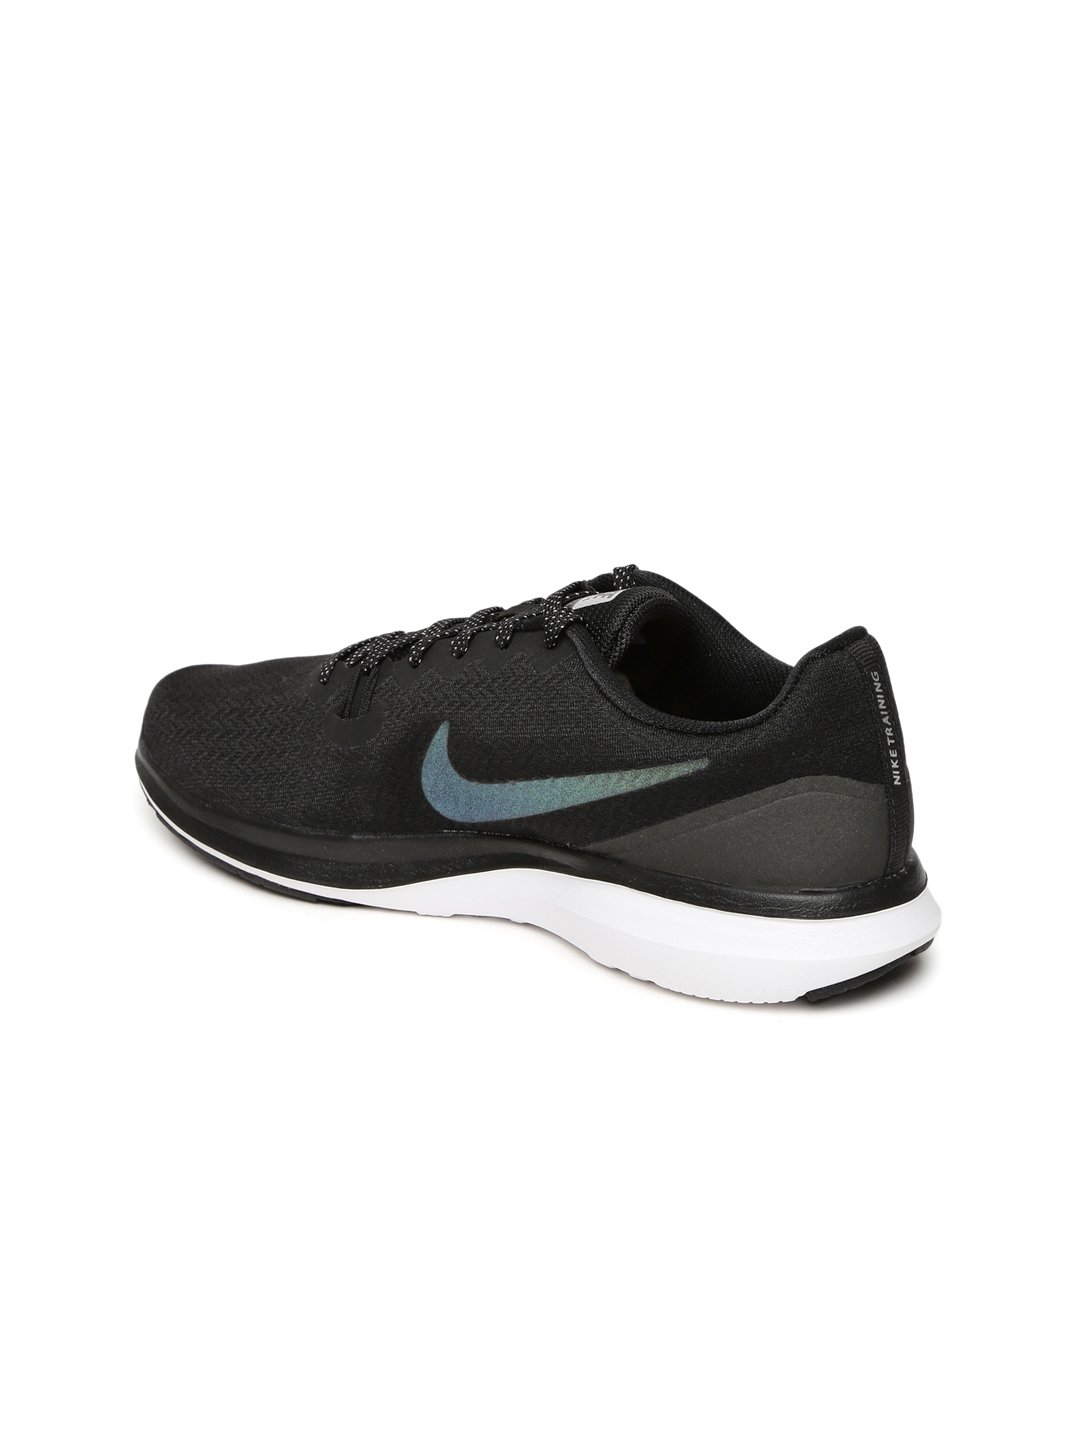 06e100377ac9 Buy Nike Women Black IN SEASON TR 7 MTLC Training Shoes - Sports ...